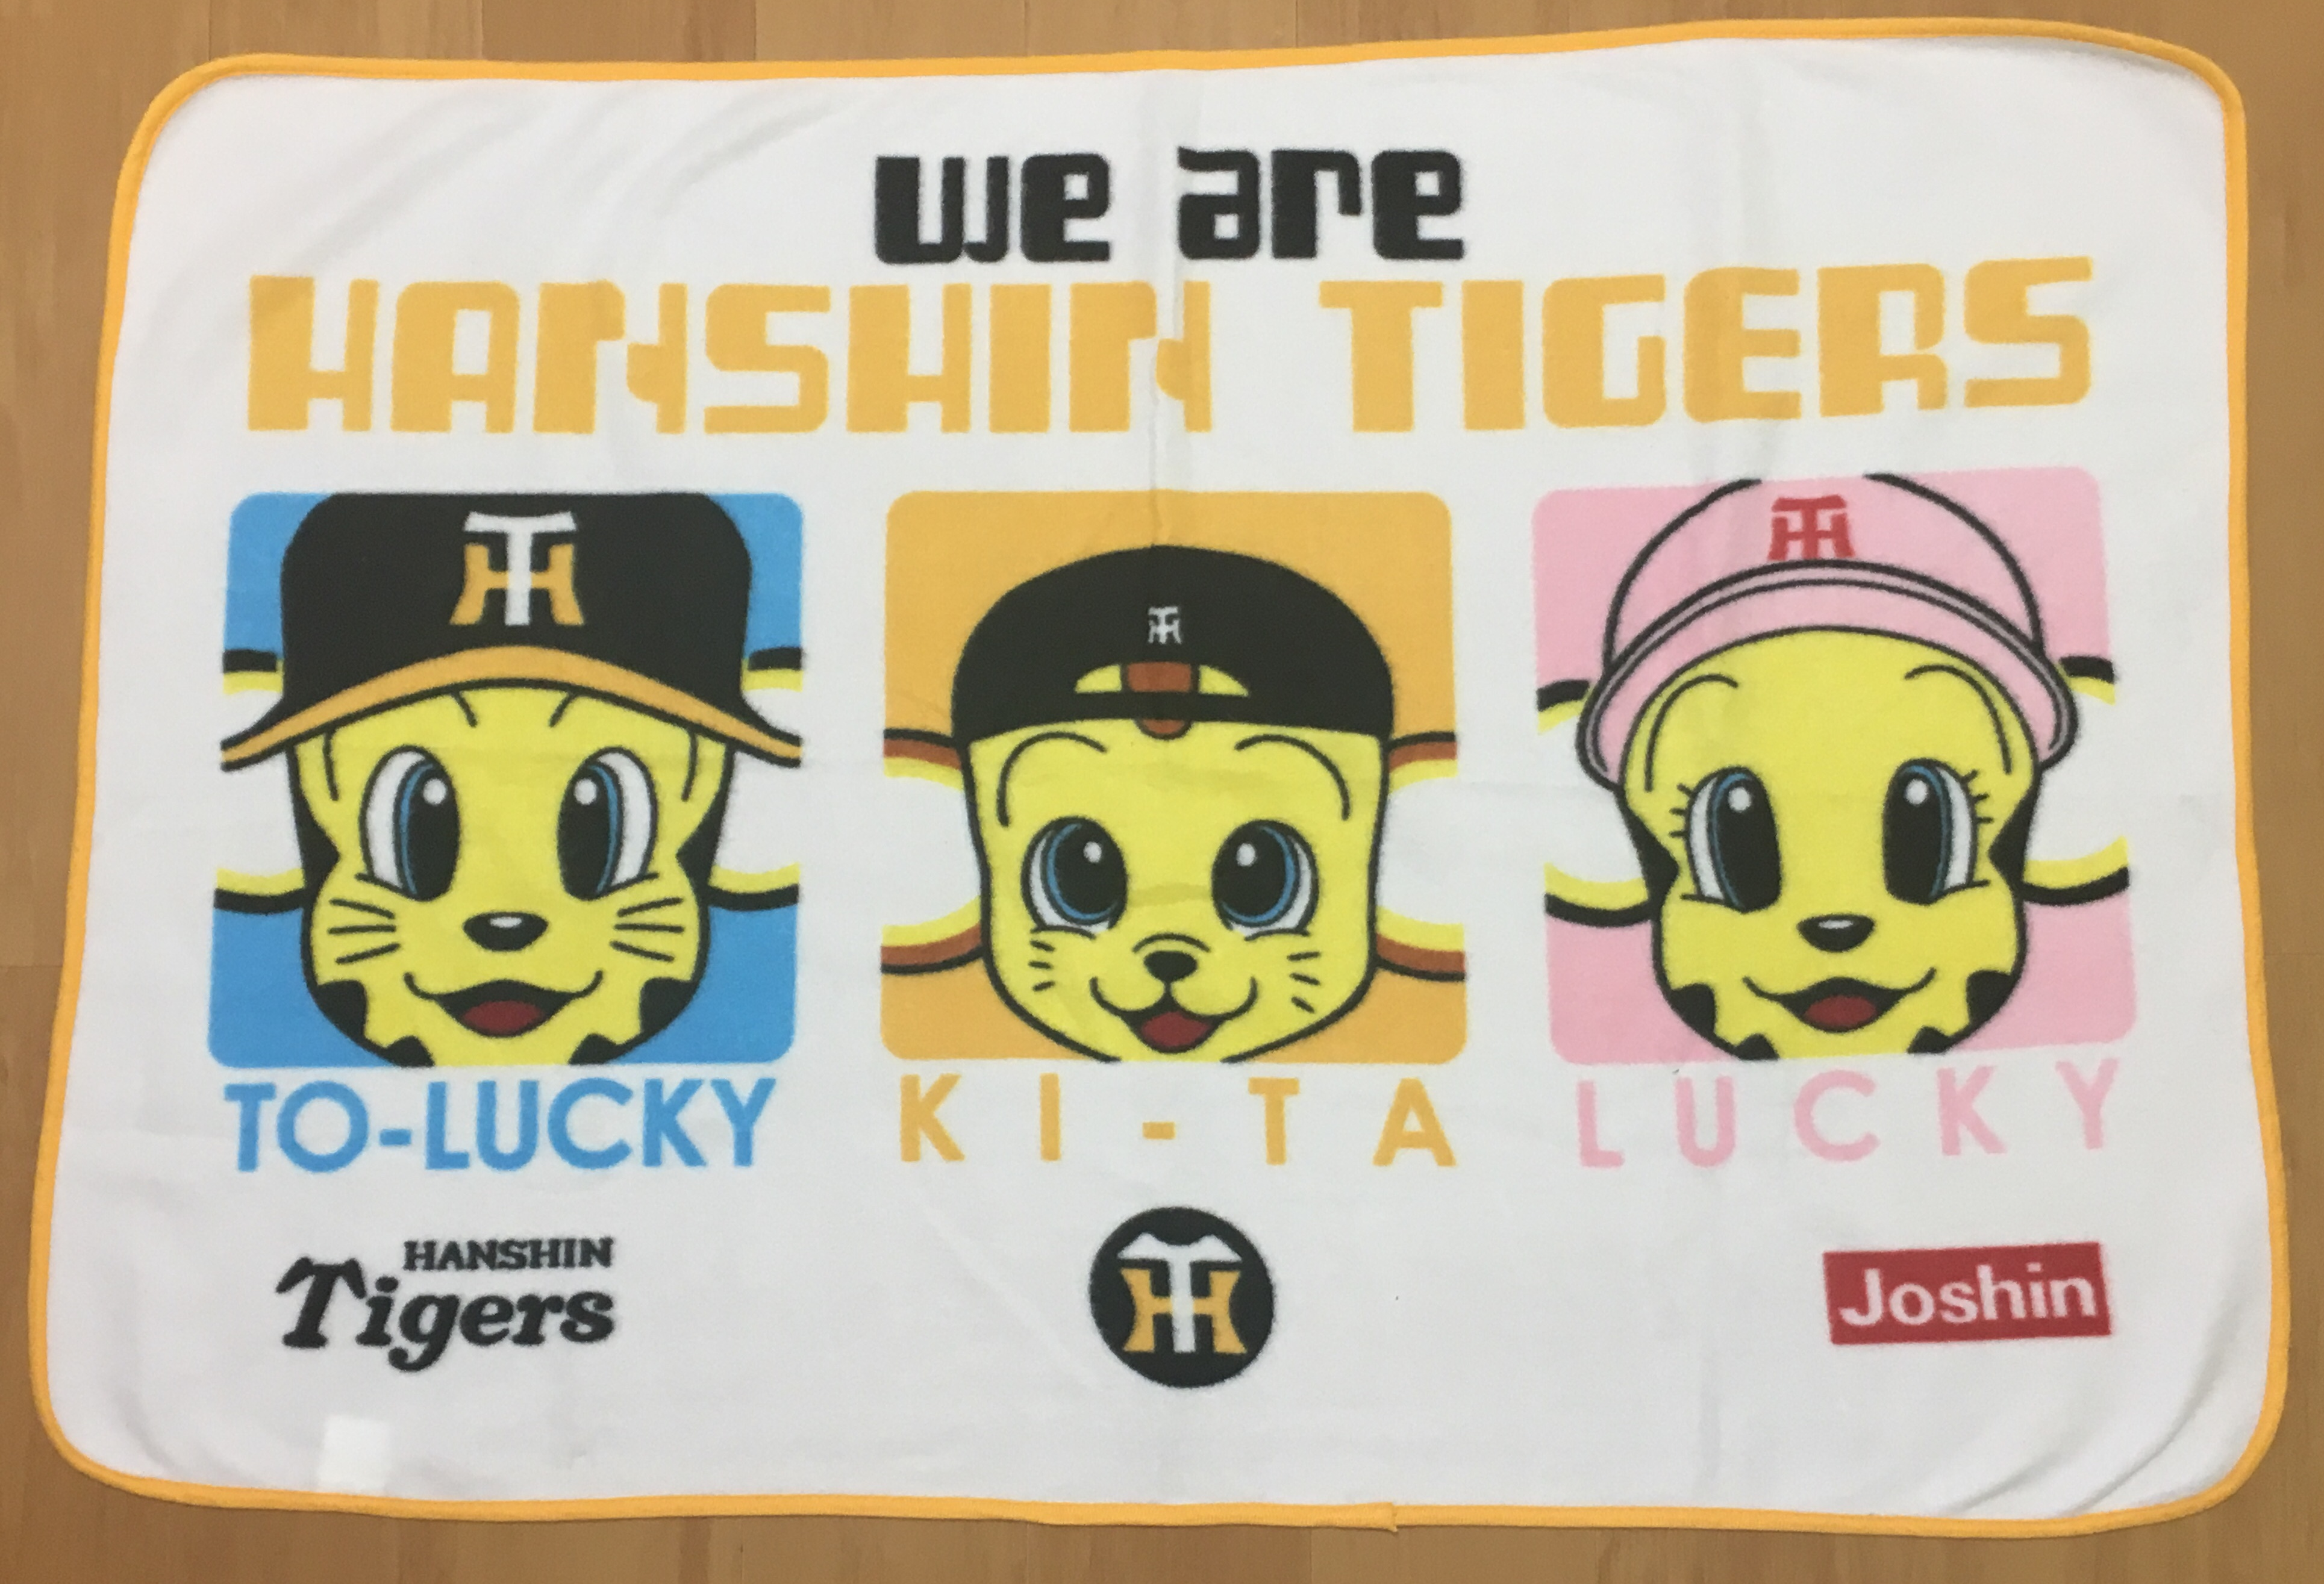 towle featuring the three tiger cubs mascots of the Hanshin Tigers baseball team